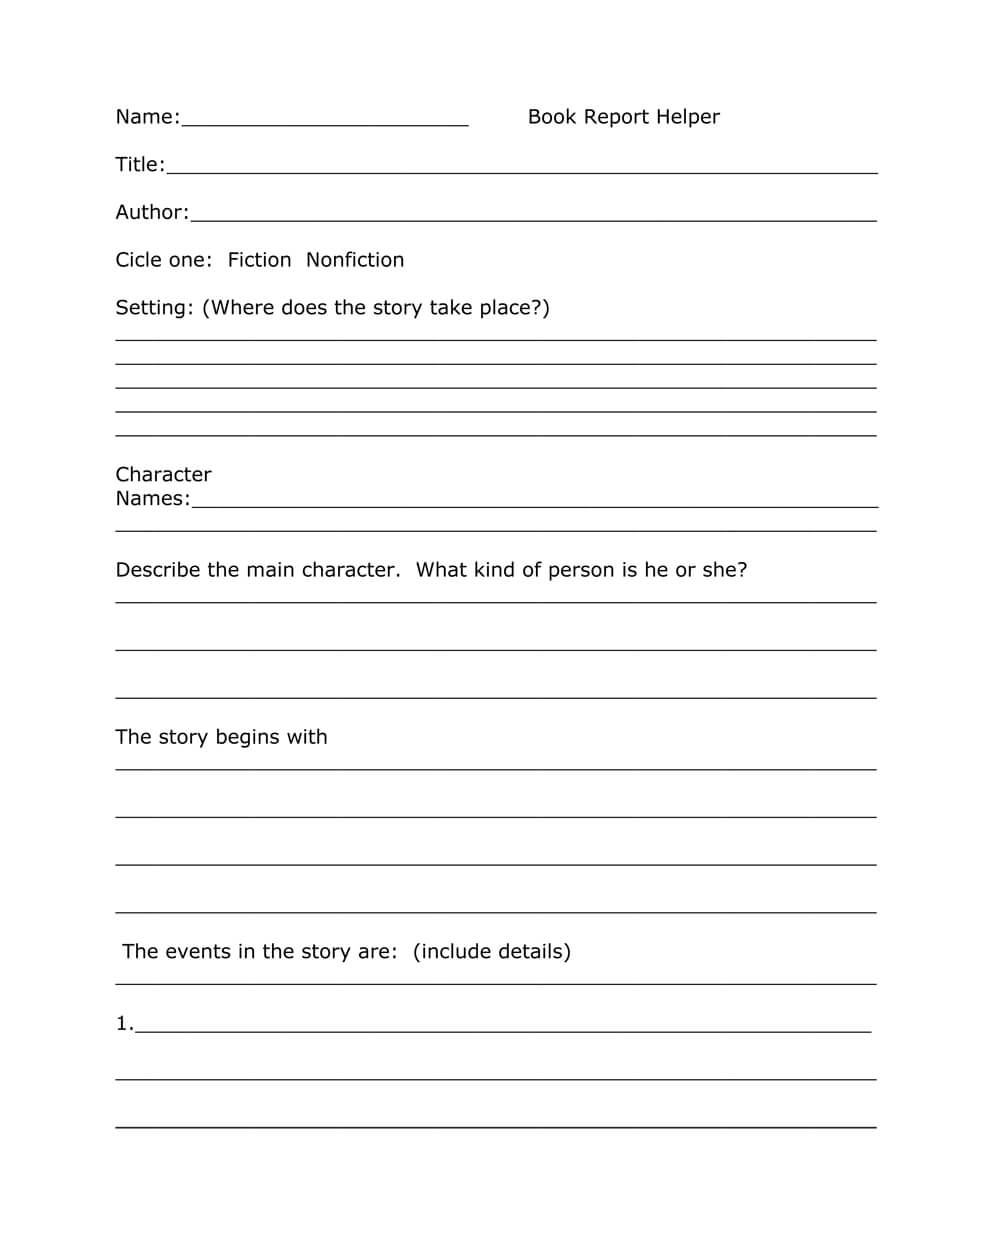 Book Report Templates From Custom Writing Service With Regard To Story Report Template